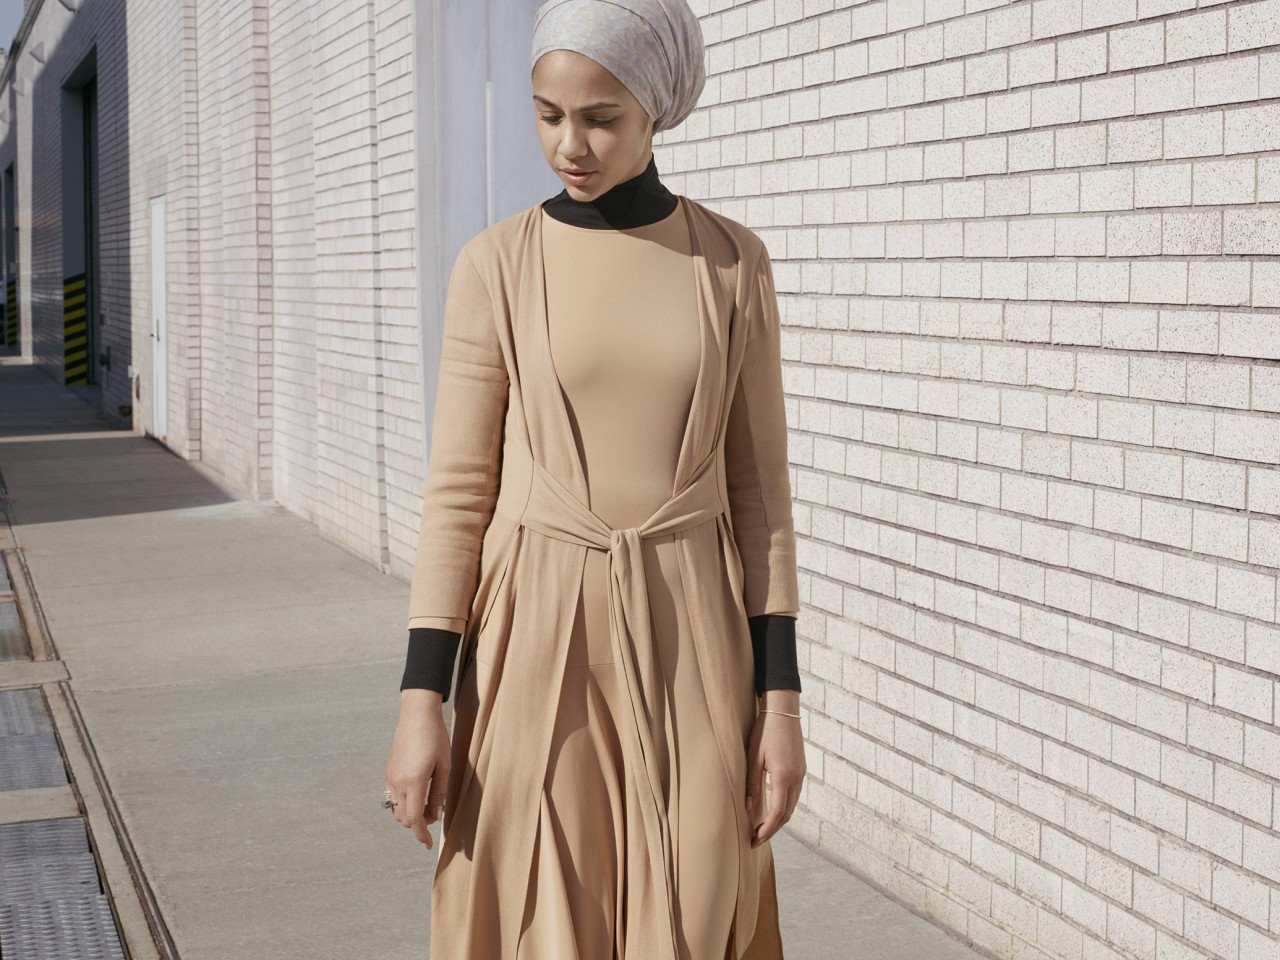 a19c86ed762 The UNIQLO x Hana Tajima 2017 Collection Is Super Versatile   Fluid ...